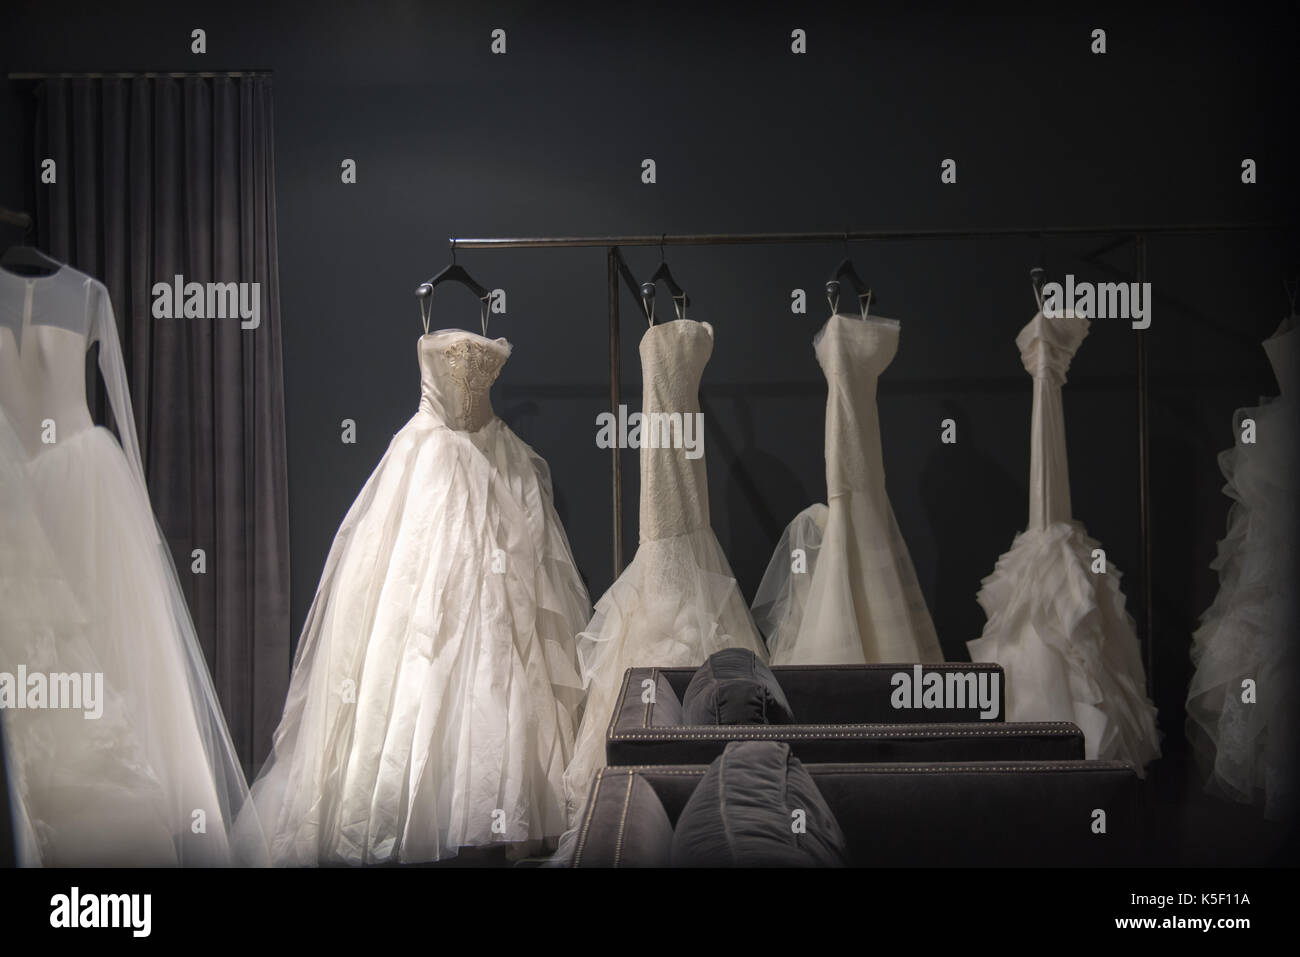 Wedding Gown Display Stock Photos & Wedding Gown Display Stock ...